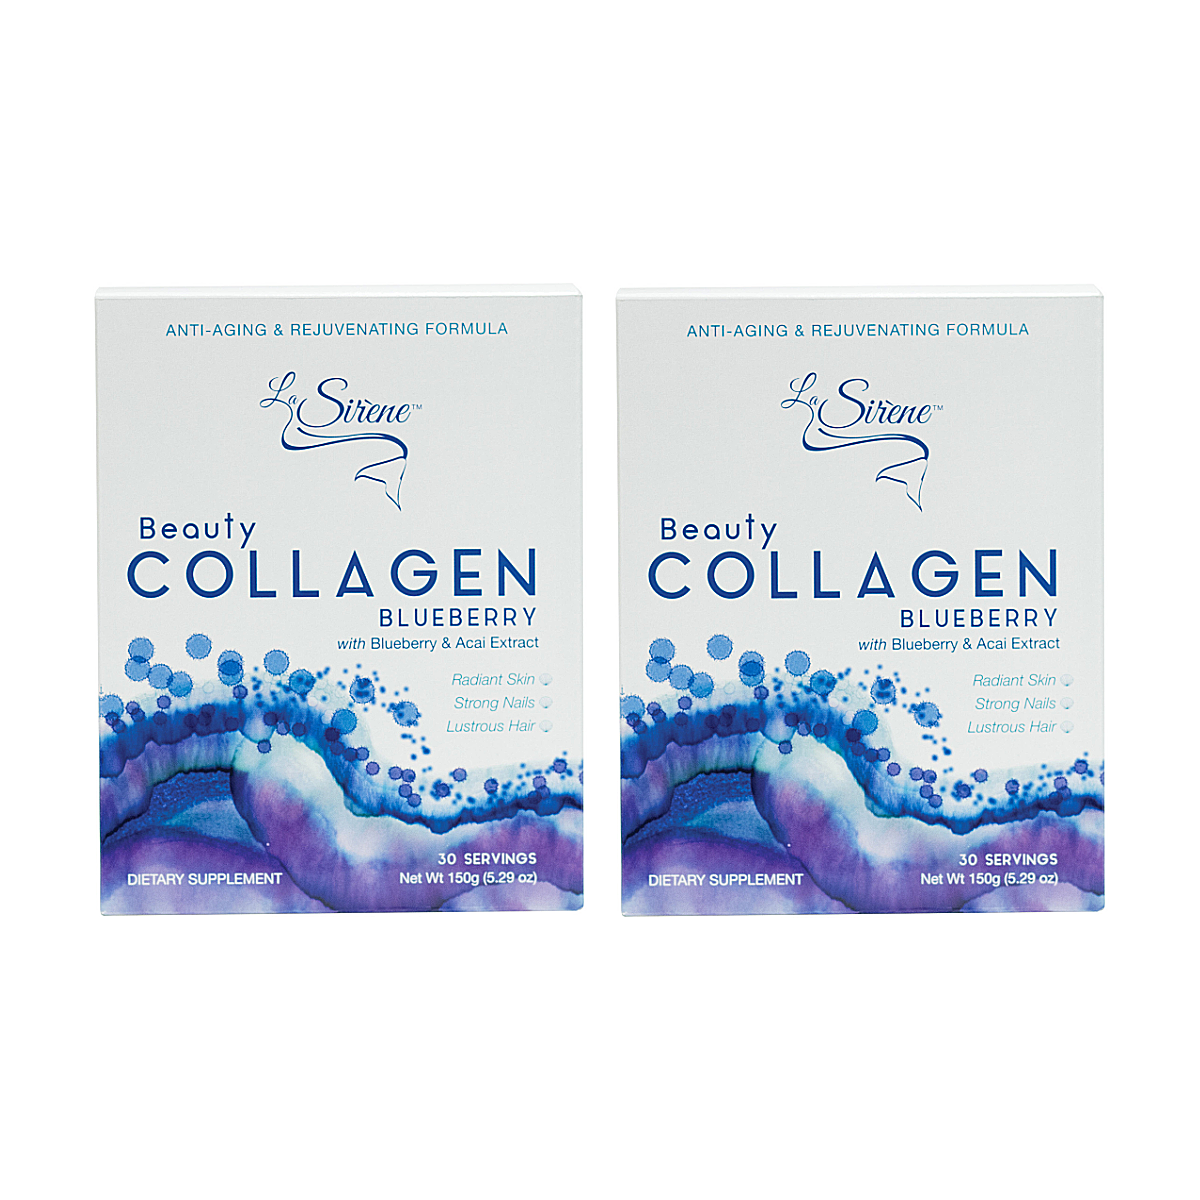 Blueberry Beauty Collagen - Forever Young Duo - La Sirène